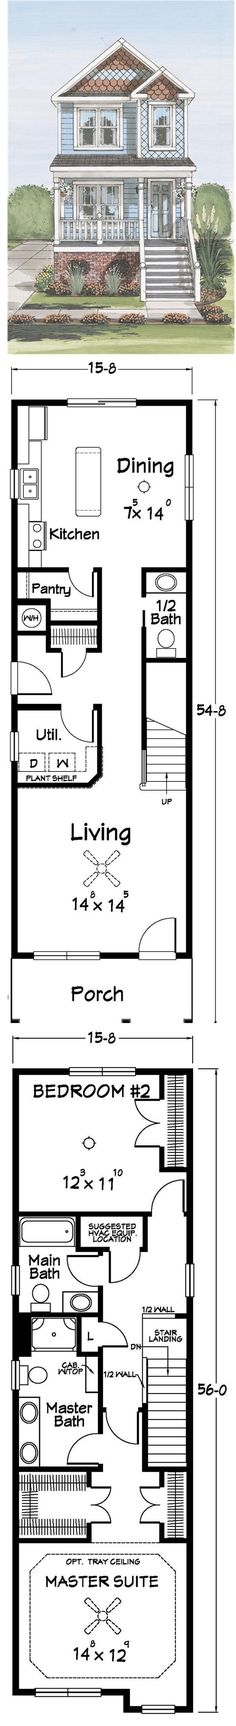 Narrow lot home plan 91470 total living area 1400 sq for City lot house plans